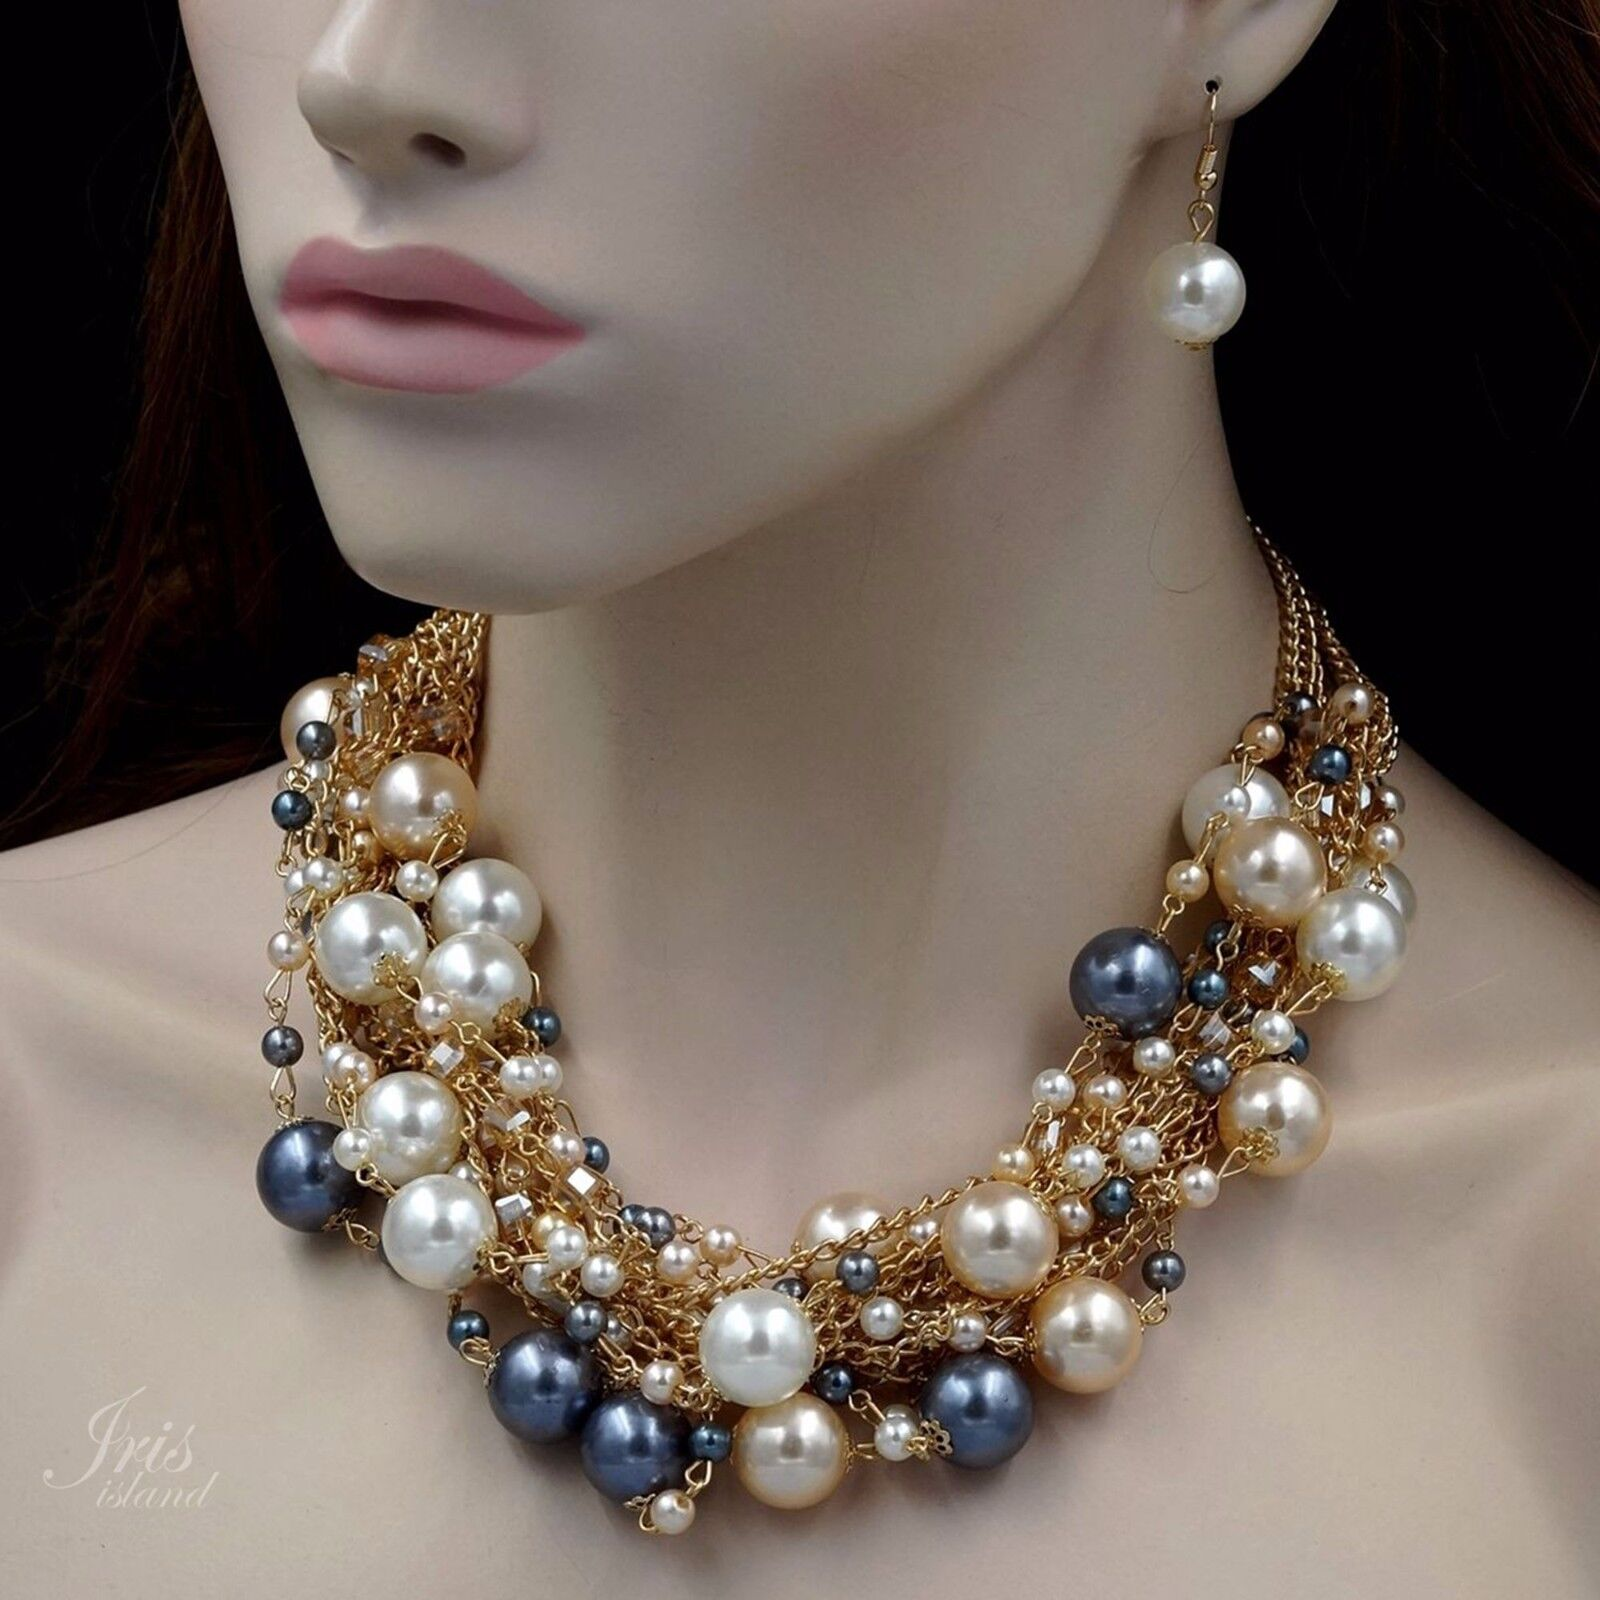 Gold Plated Silver Necklace Set 290 00: Gold Plated GP Pearl Crystal Bead Necklace Earrings